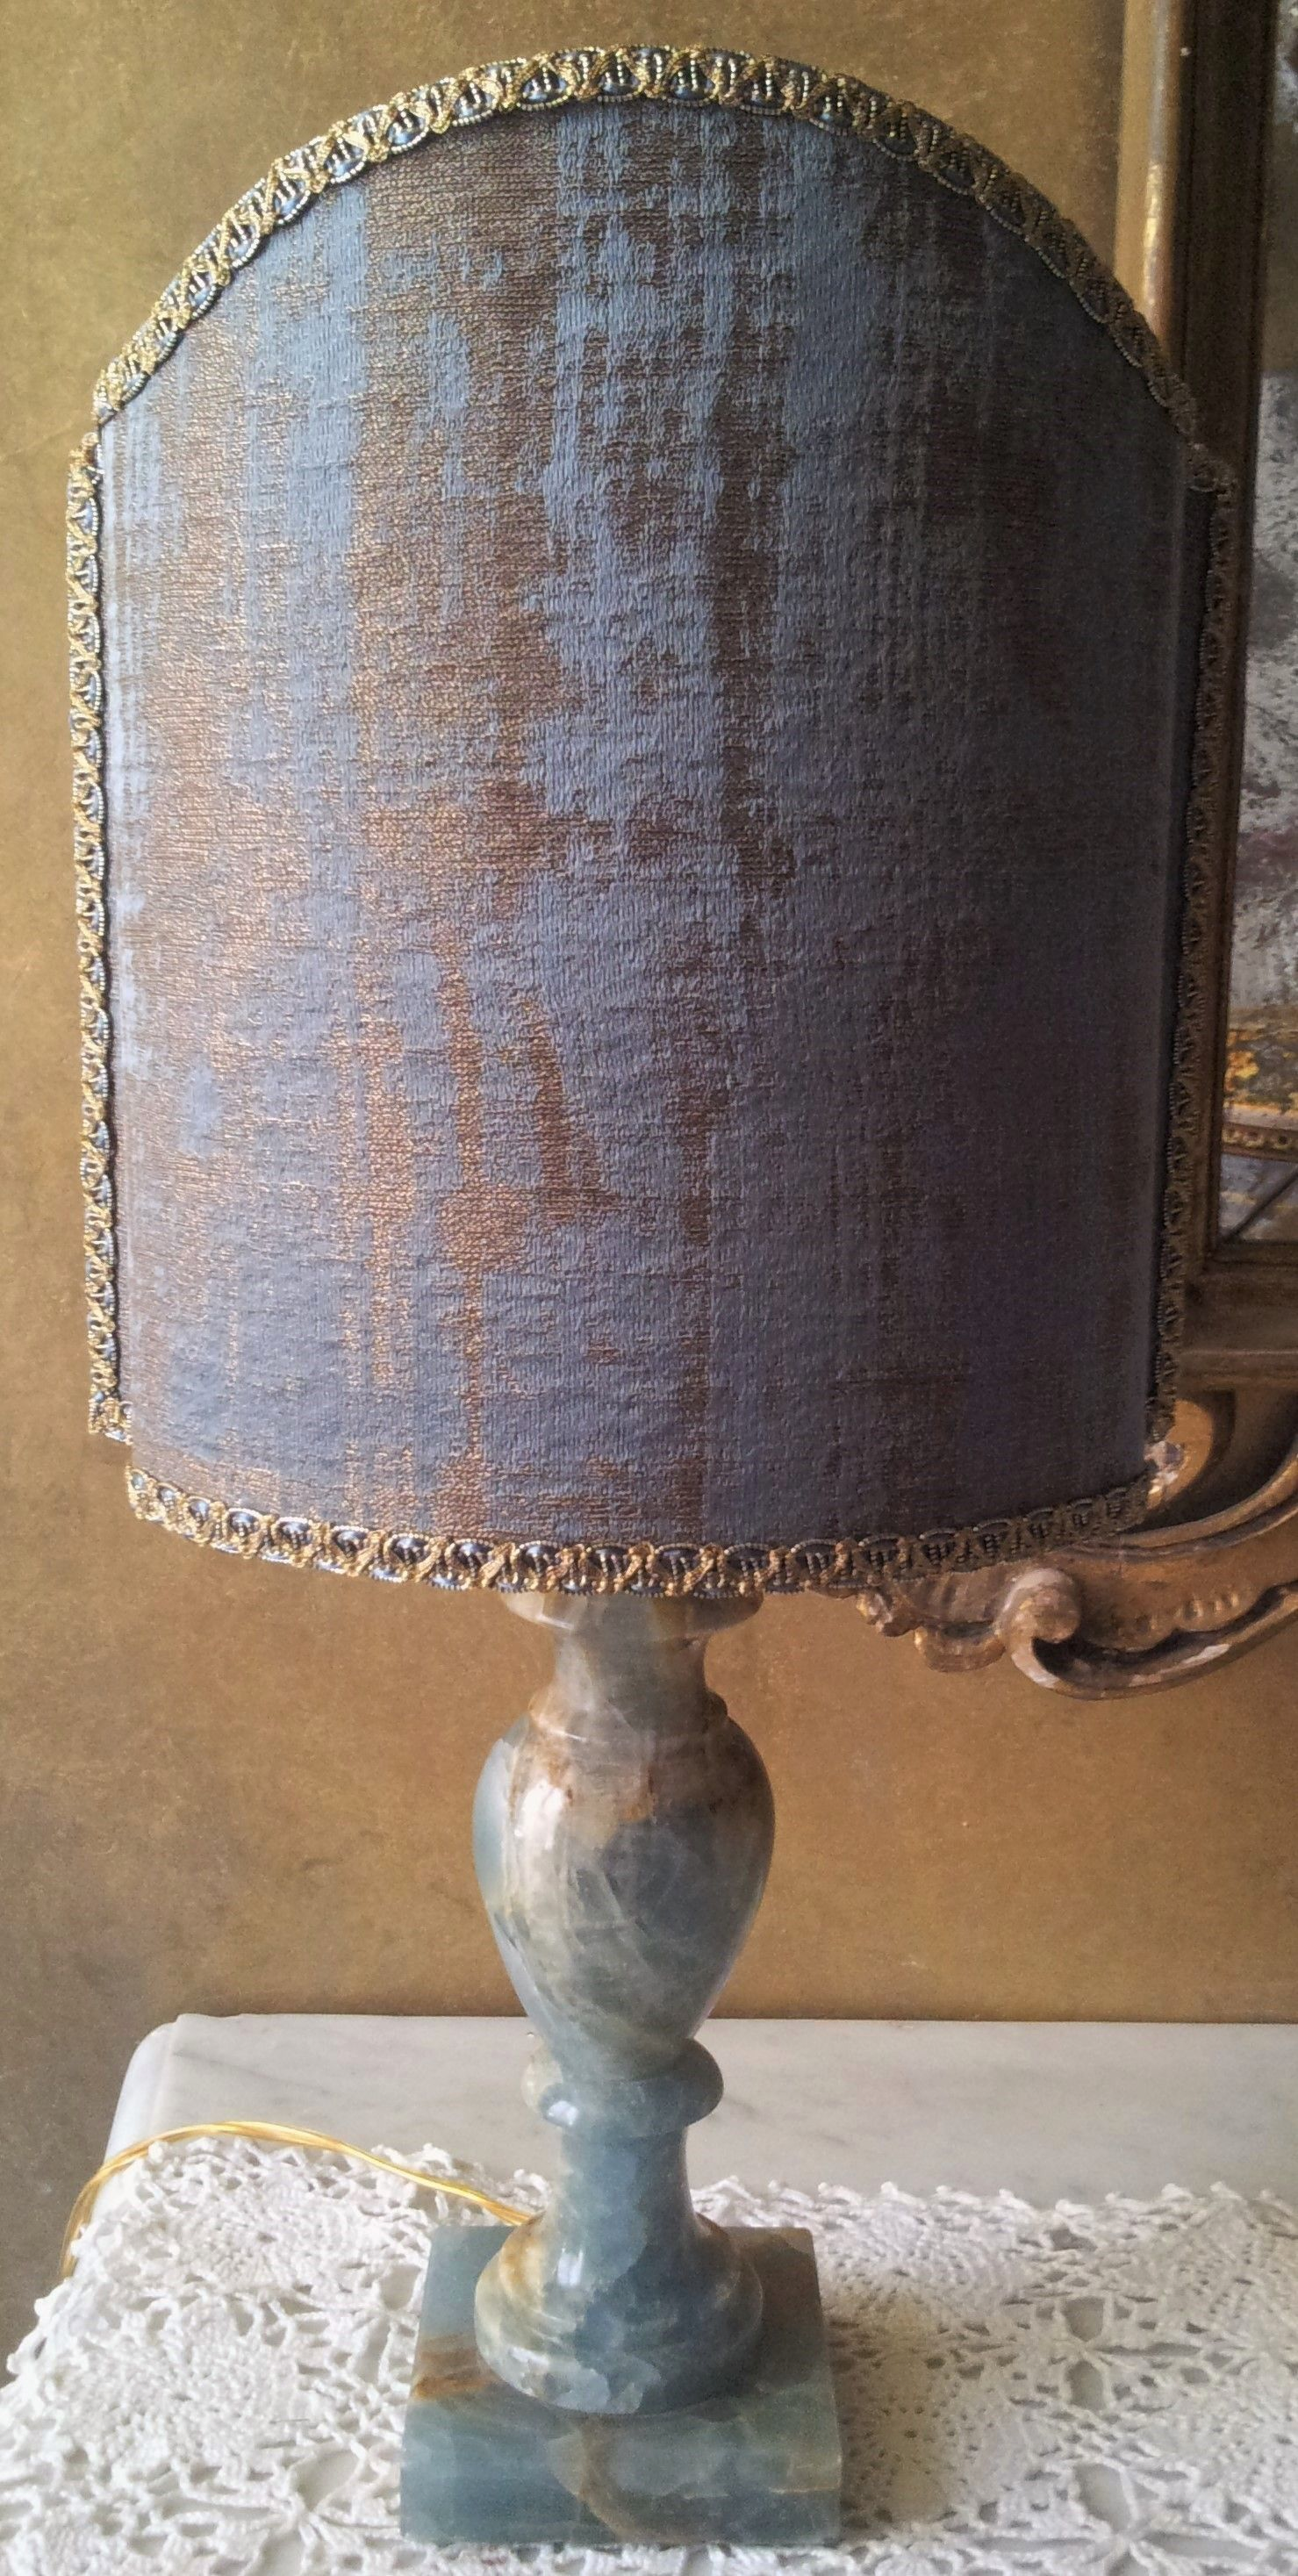 Vintage Blue Onyx Table Lamp With Blue And Gold Rubelli Fabric